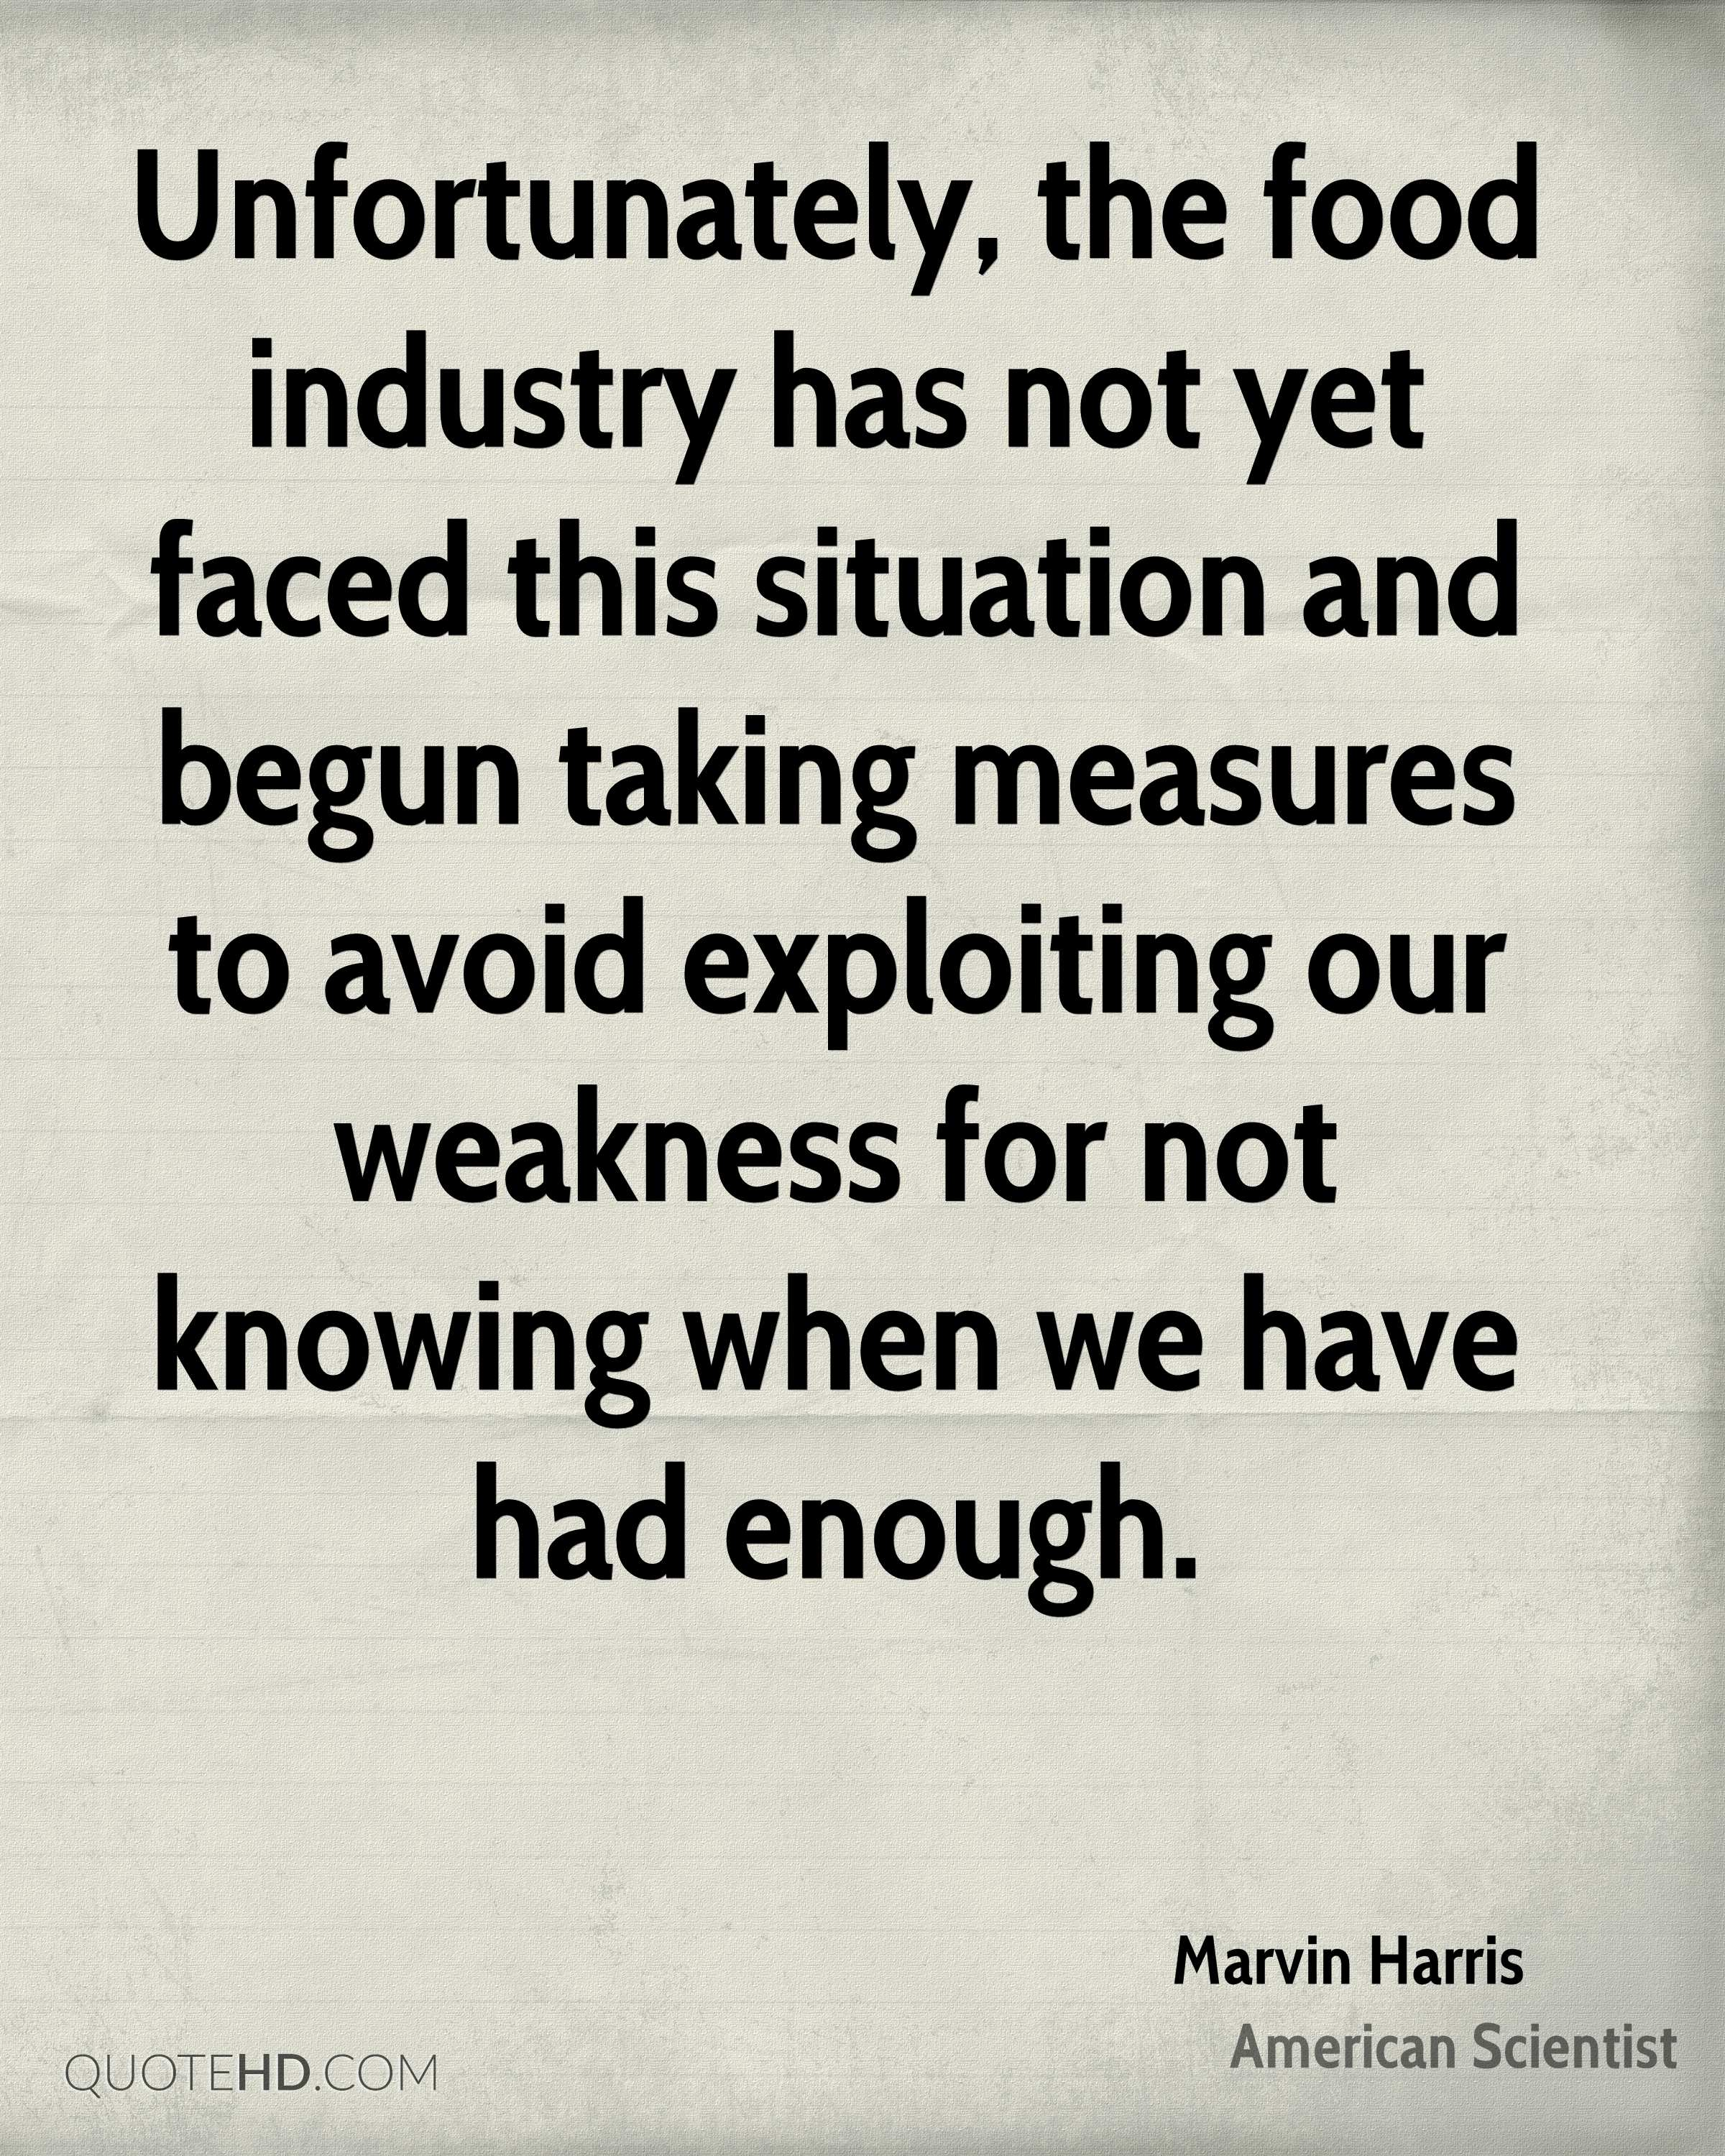 Unfortunately, the food industry has not yet faced this situation and begun taking measures to avoid exploiting our weakness for not knowing when we have had enough.